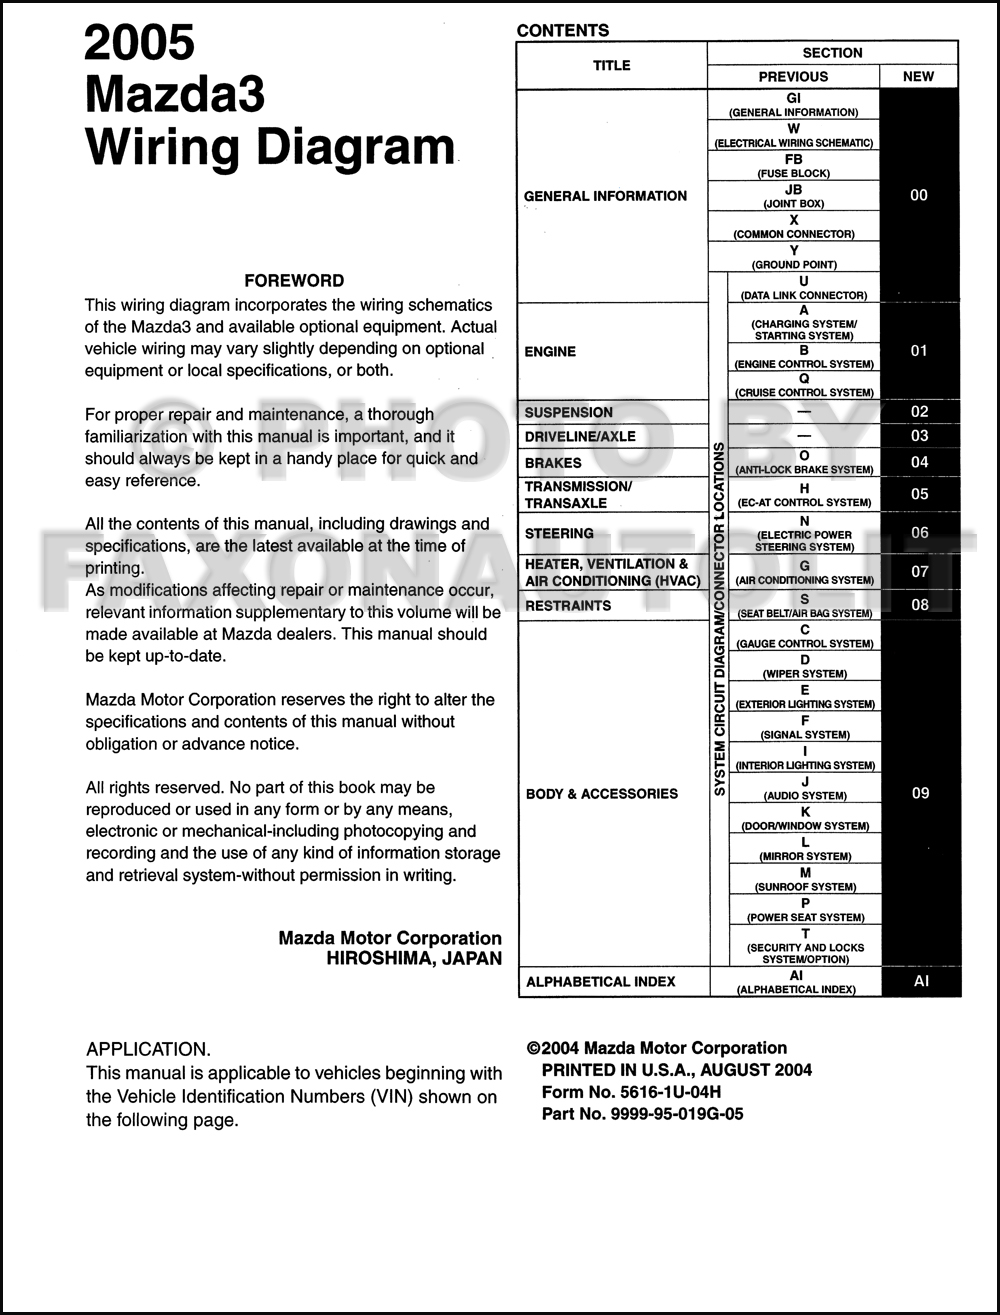 2005Mazda3OWD TOC 2005 mazda 3 wiring diagram manual original 2008 mazda 3 wiring diagram manual at honlapkeszites.co